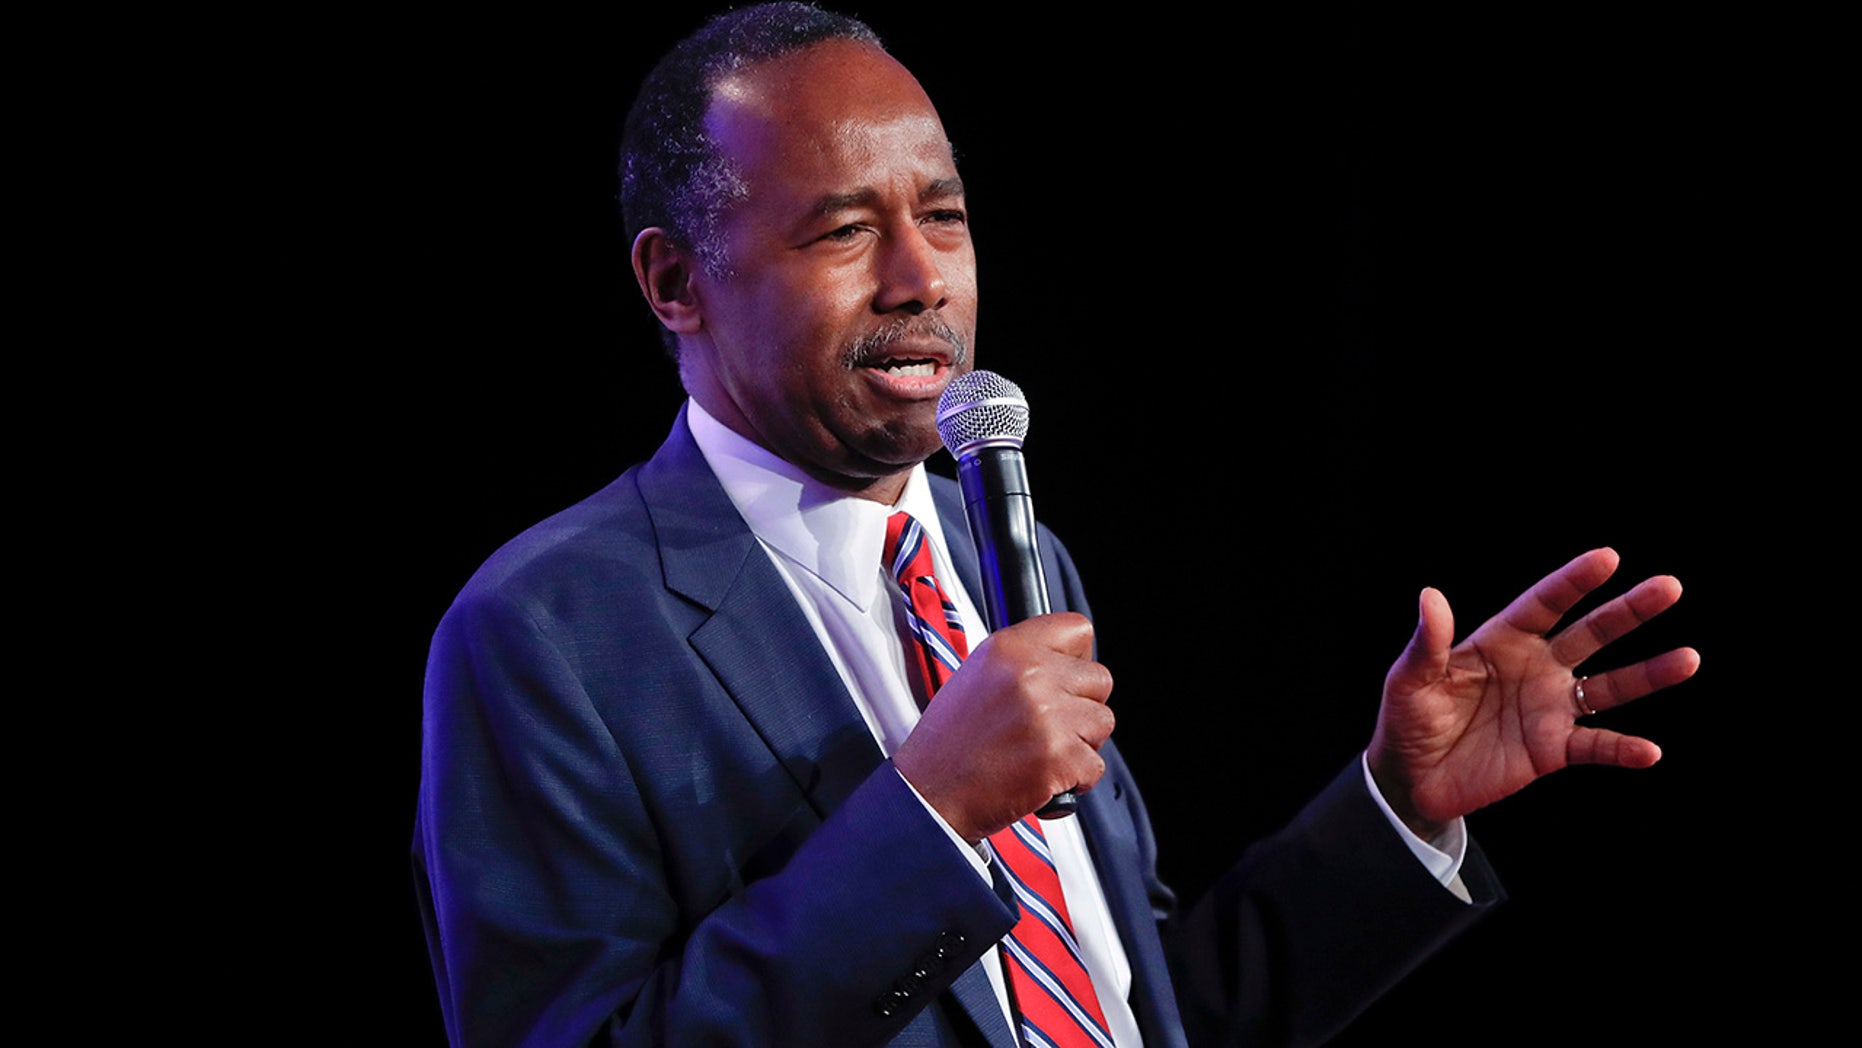 Housing and Urban Development Secretary Ben Carson speaks to the 2018 Values Voter Summit in Washington, Sept. 21, 2018.